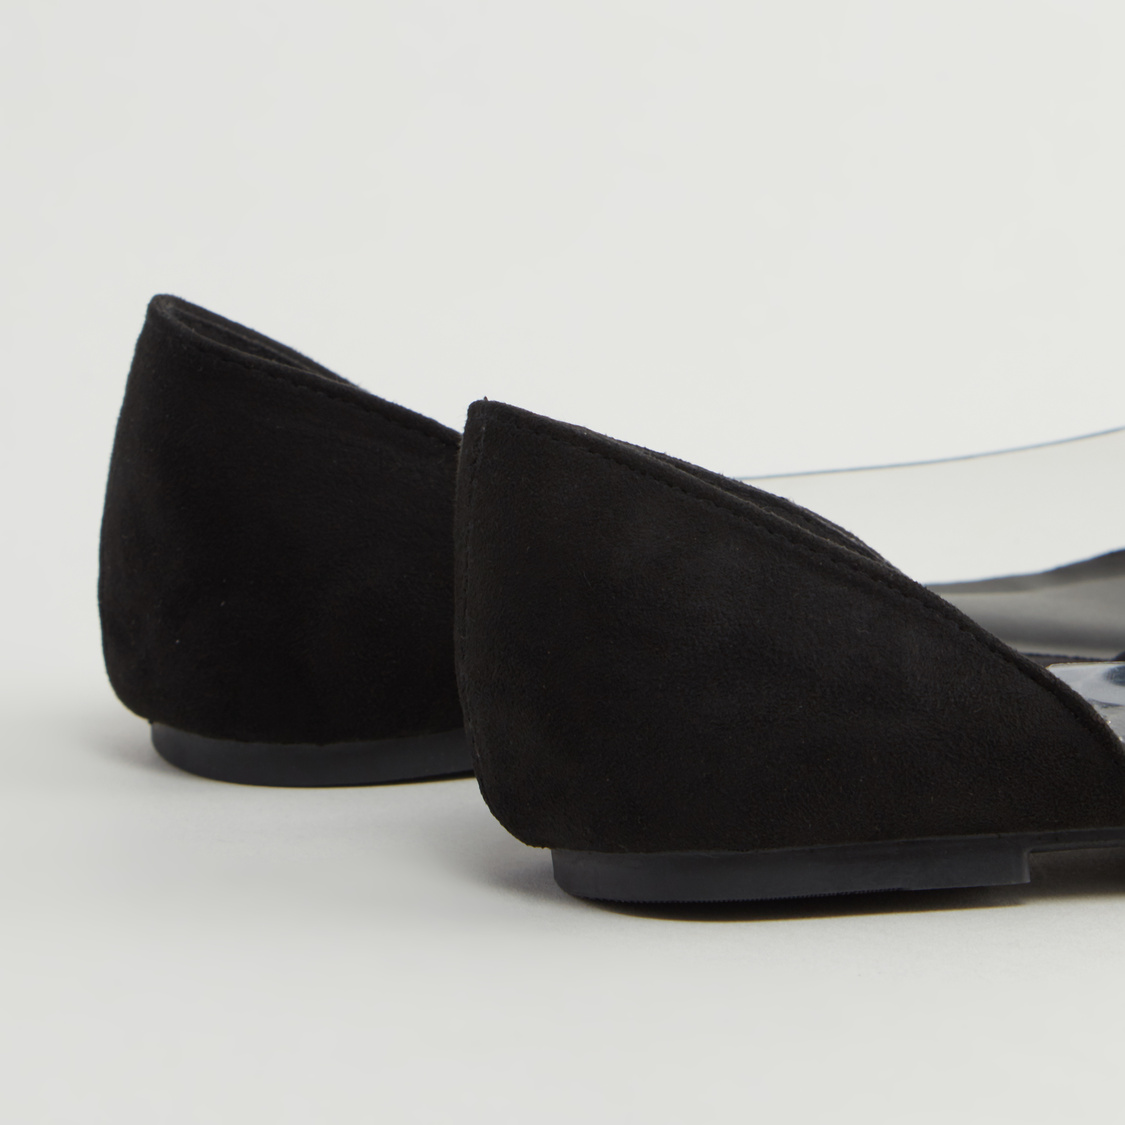 Textured Slip-On Shoes with Tapered Toe Cap